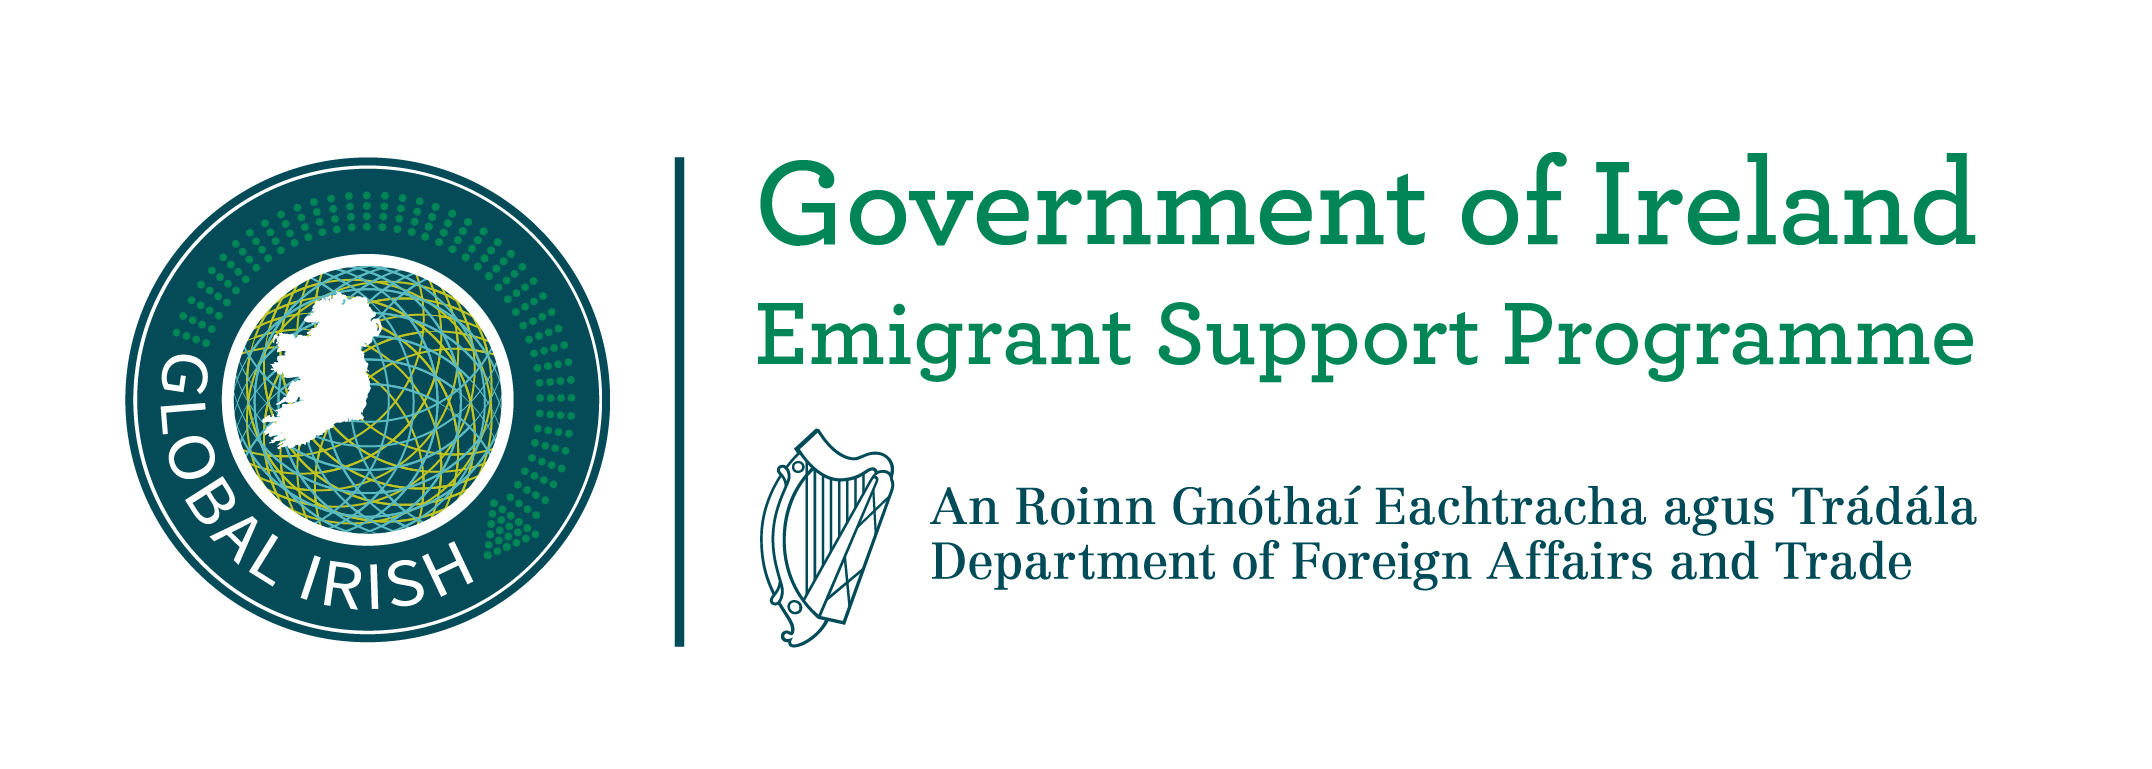 Call for Applications for the Emigrant Support Programme 2019 is now OPEN